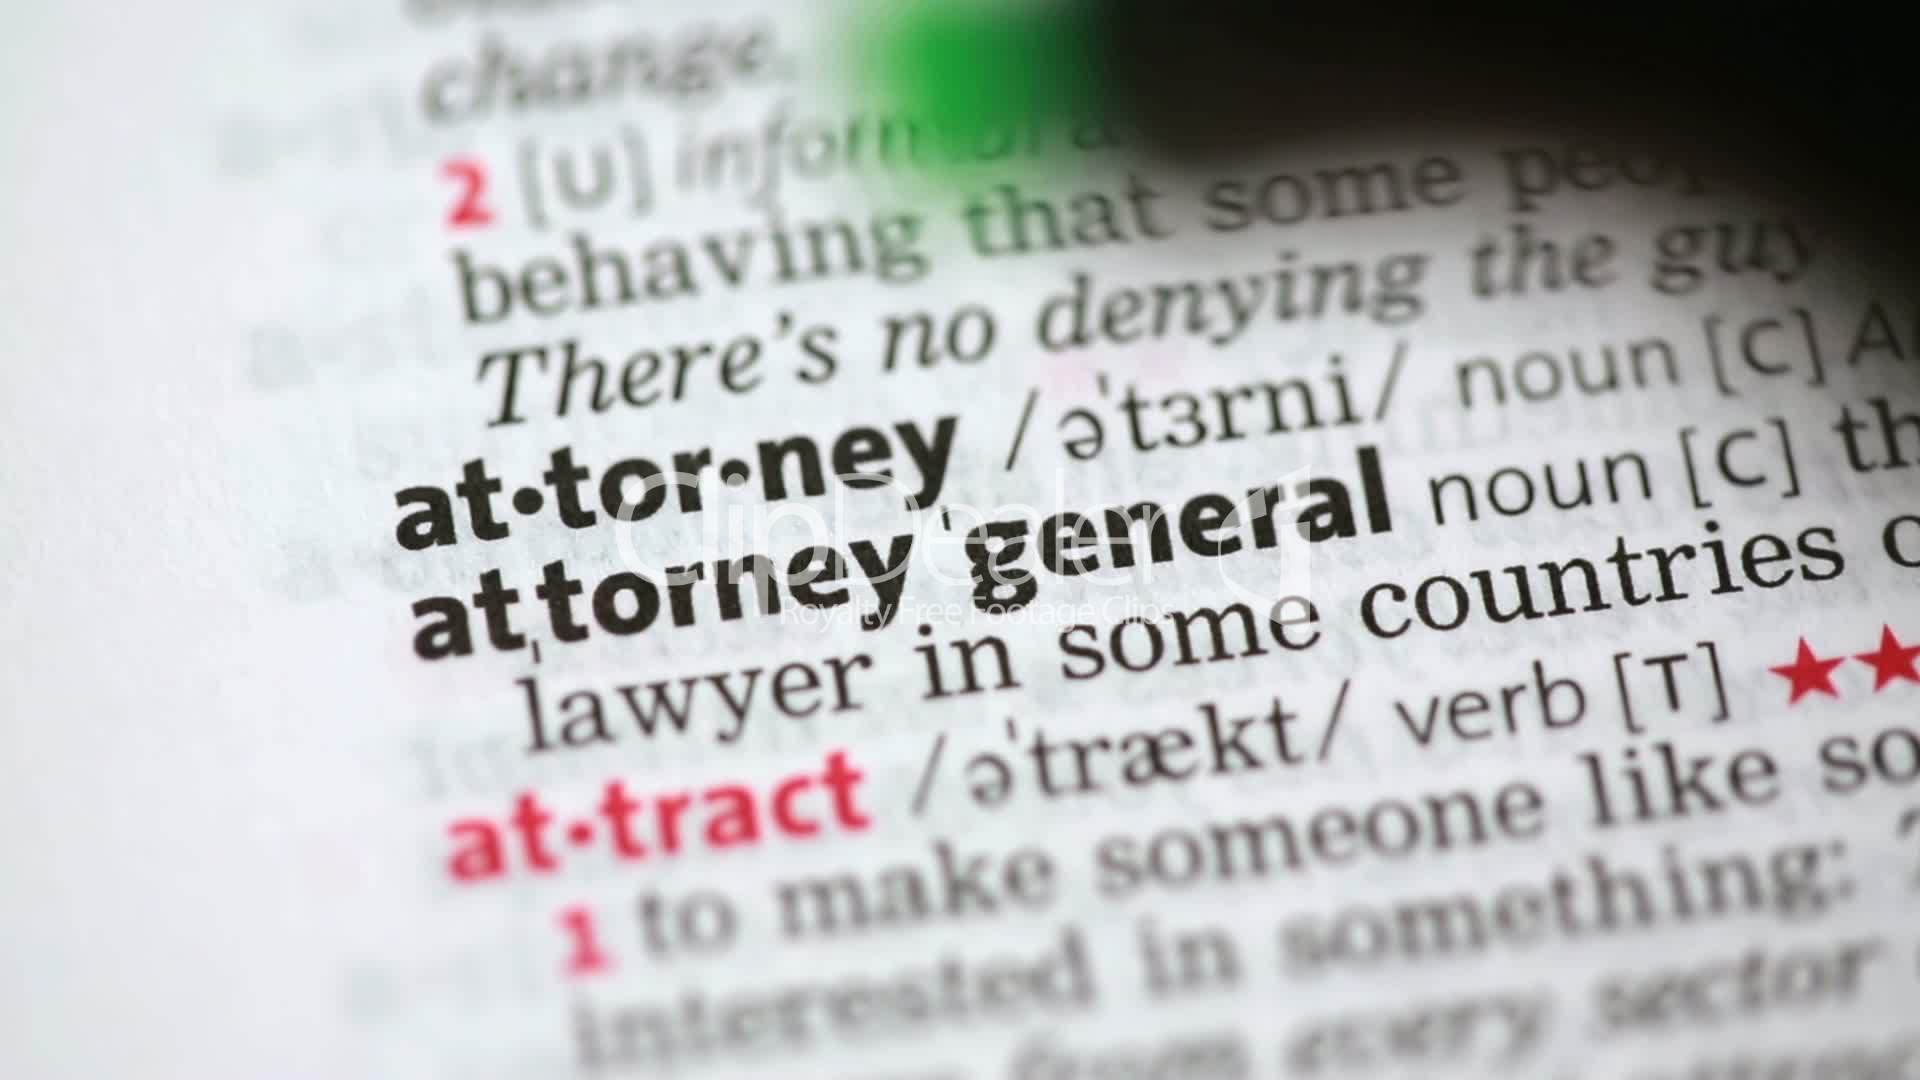 Definition of attorney: Royalty-free video and stock footage